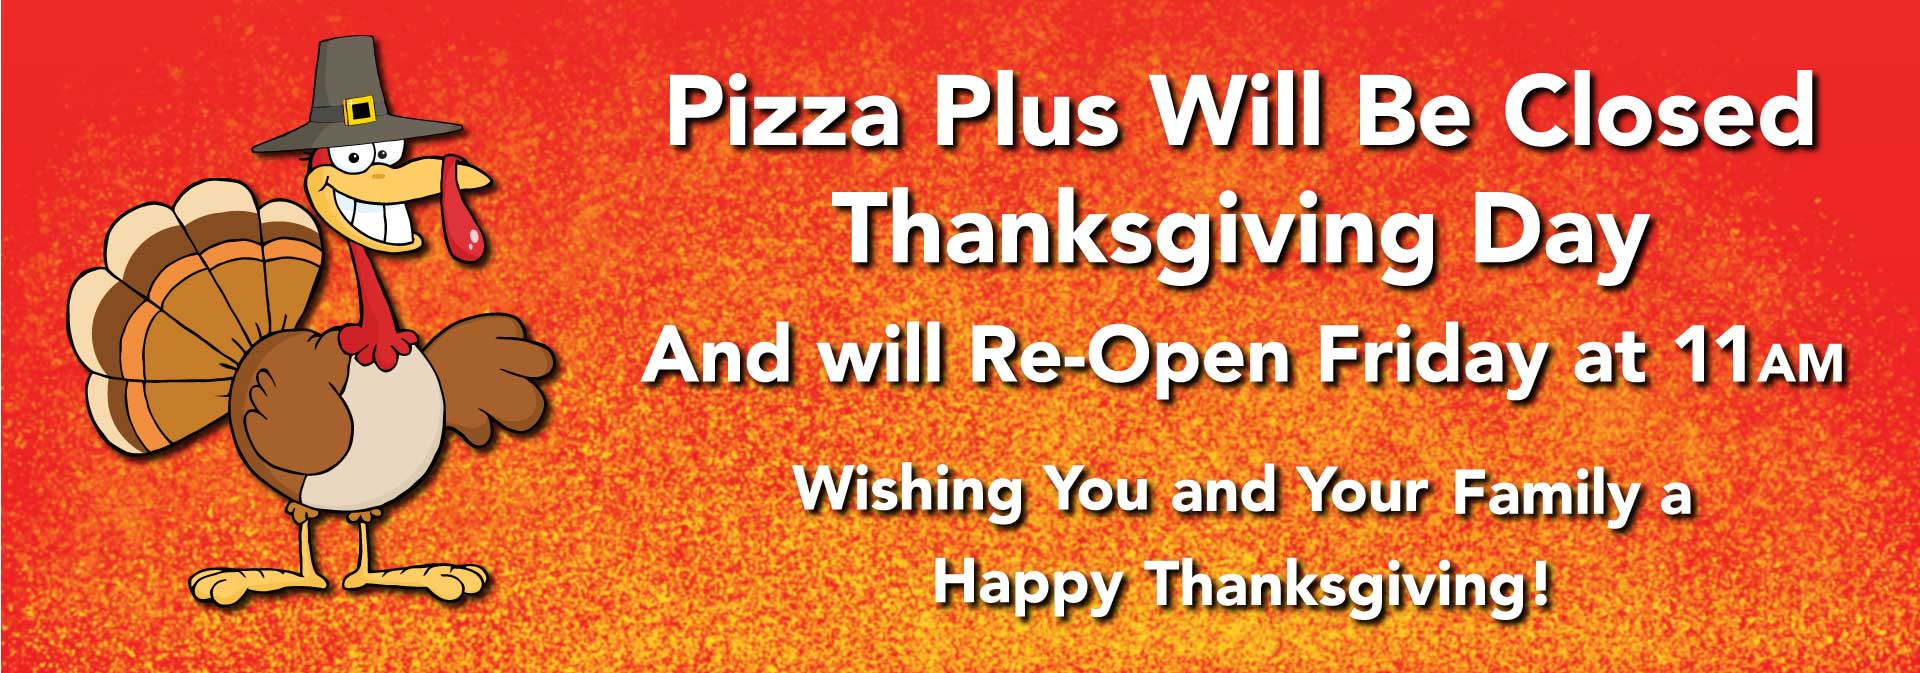 Pizza Plus closed on Thanksgiving. Will reopen Friday at 11am.